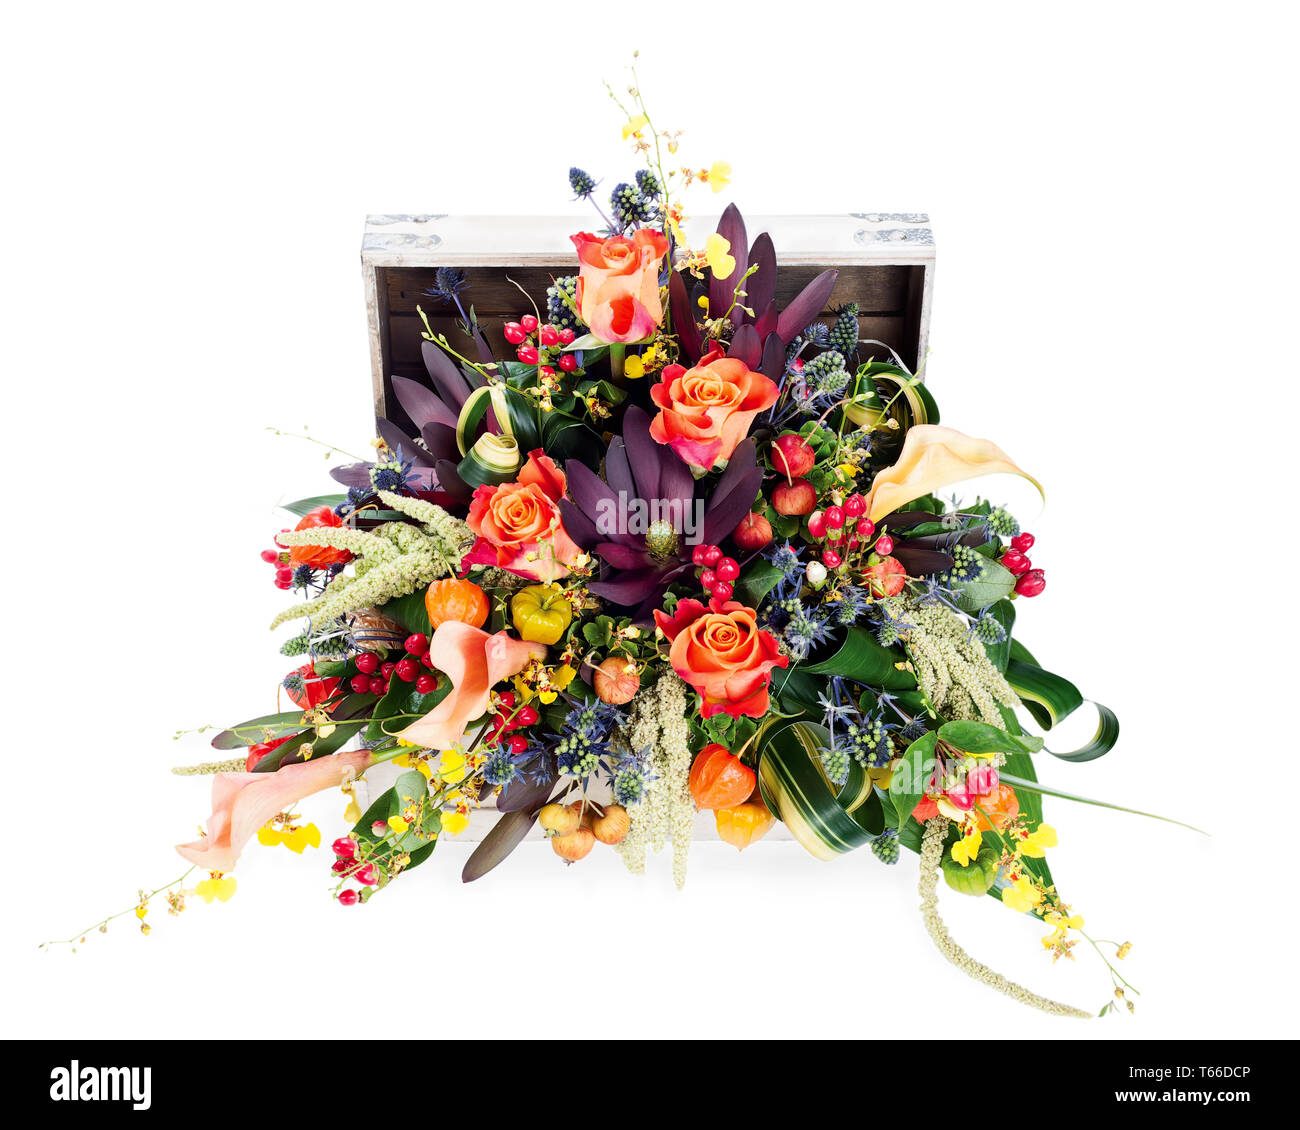 A colorful floral arrangement of roses, lilies, fr - Stock Image